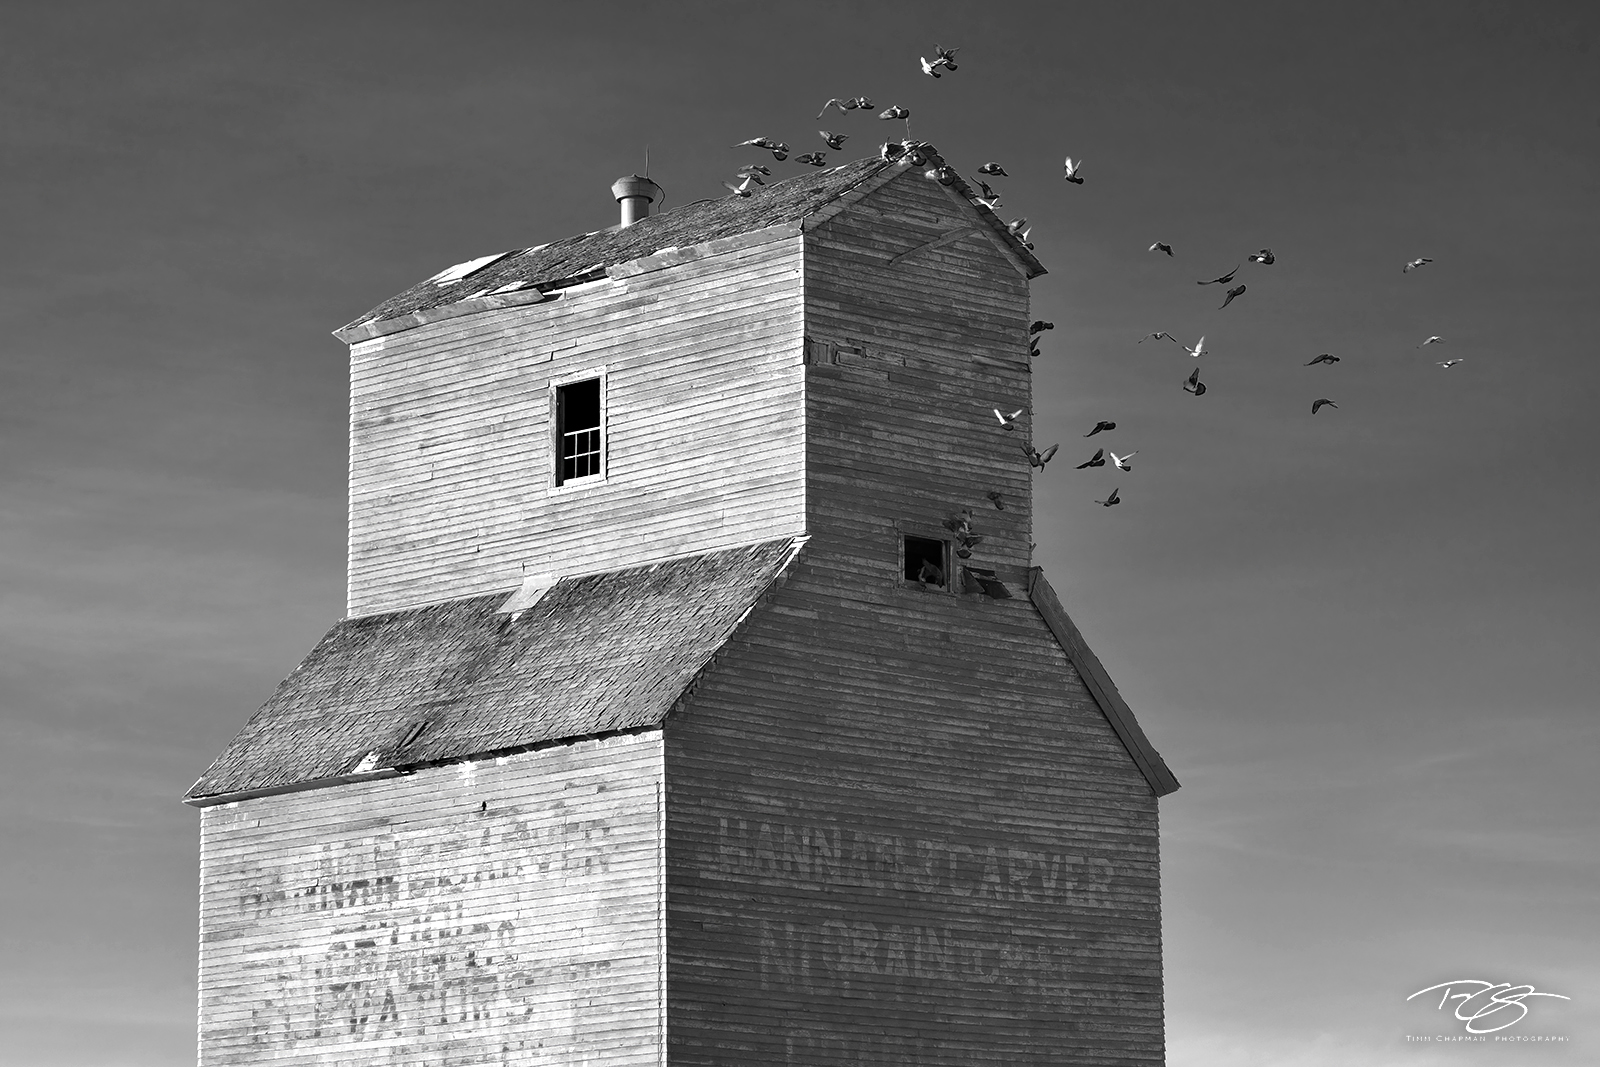 Originally built in 1910, this grain elevator served the local farming community until the 1960s when it was then sold for private...